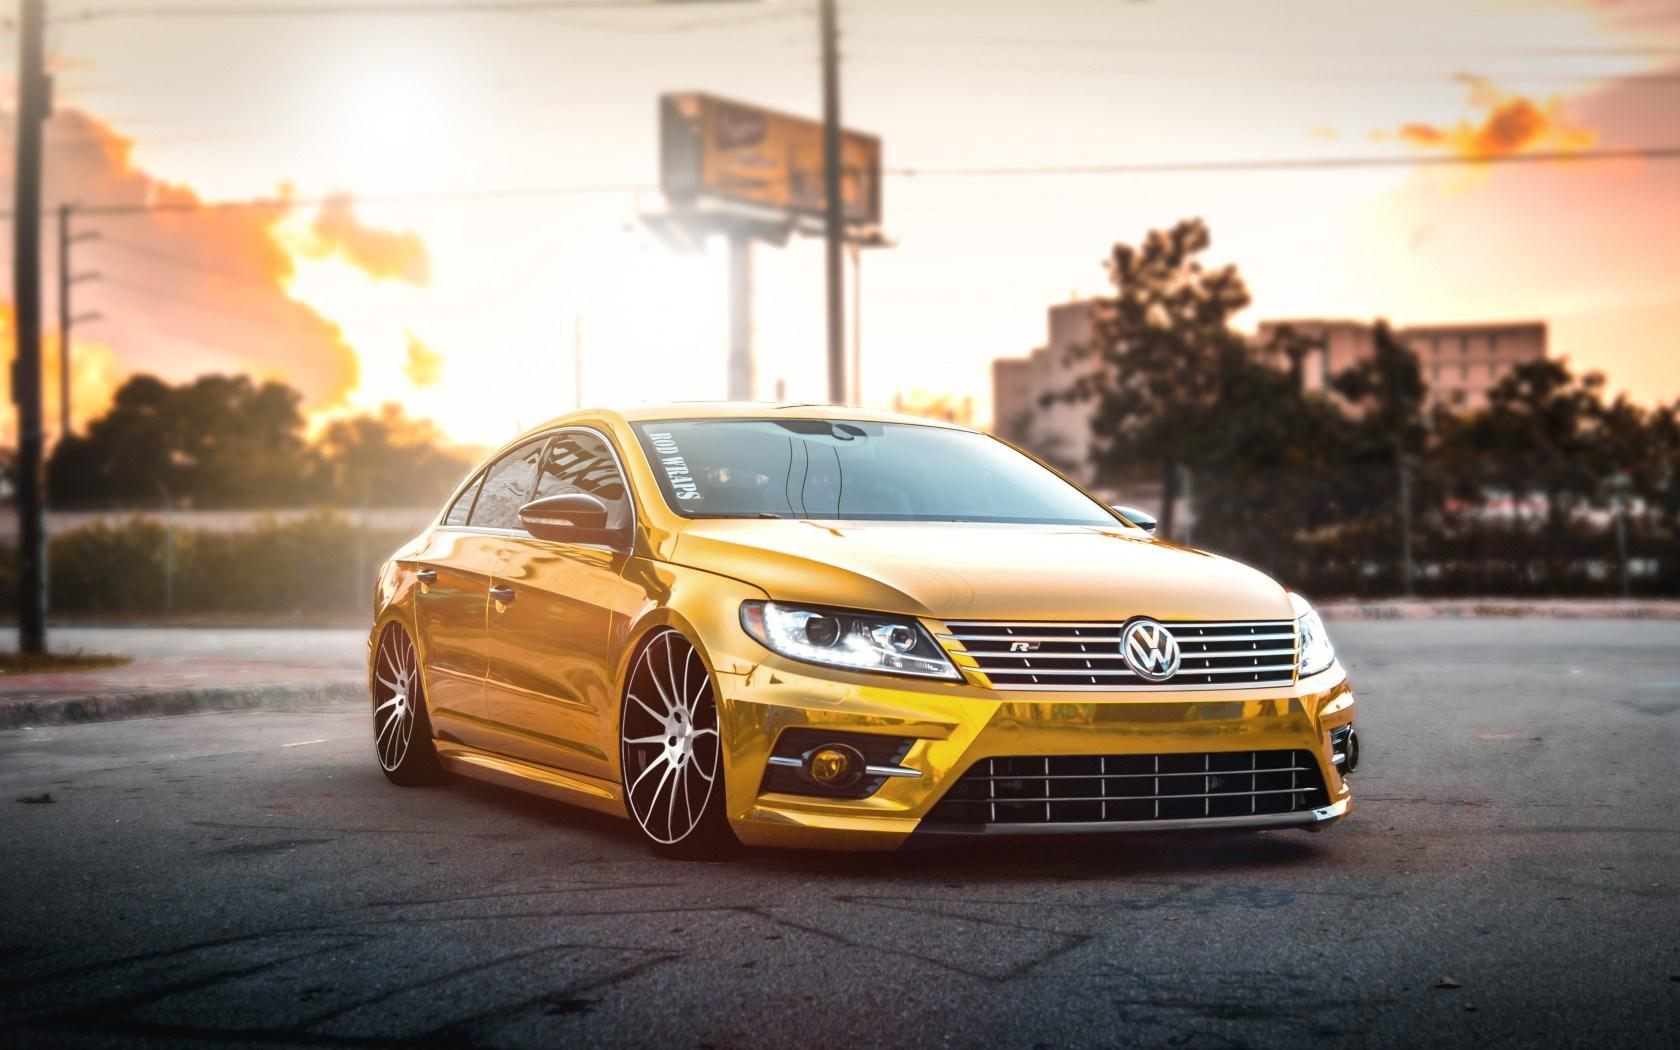 stunning gold car wallpaper 43452